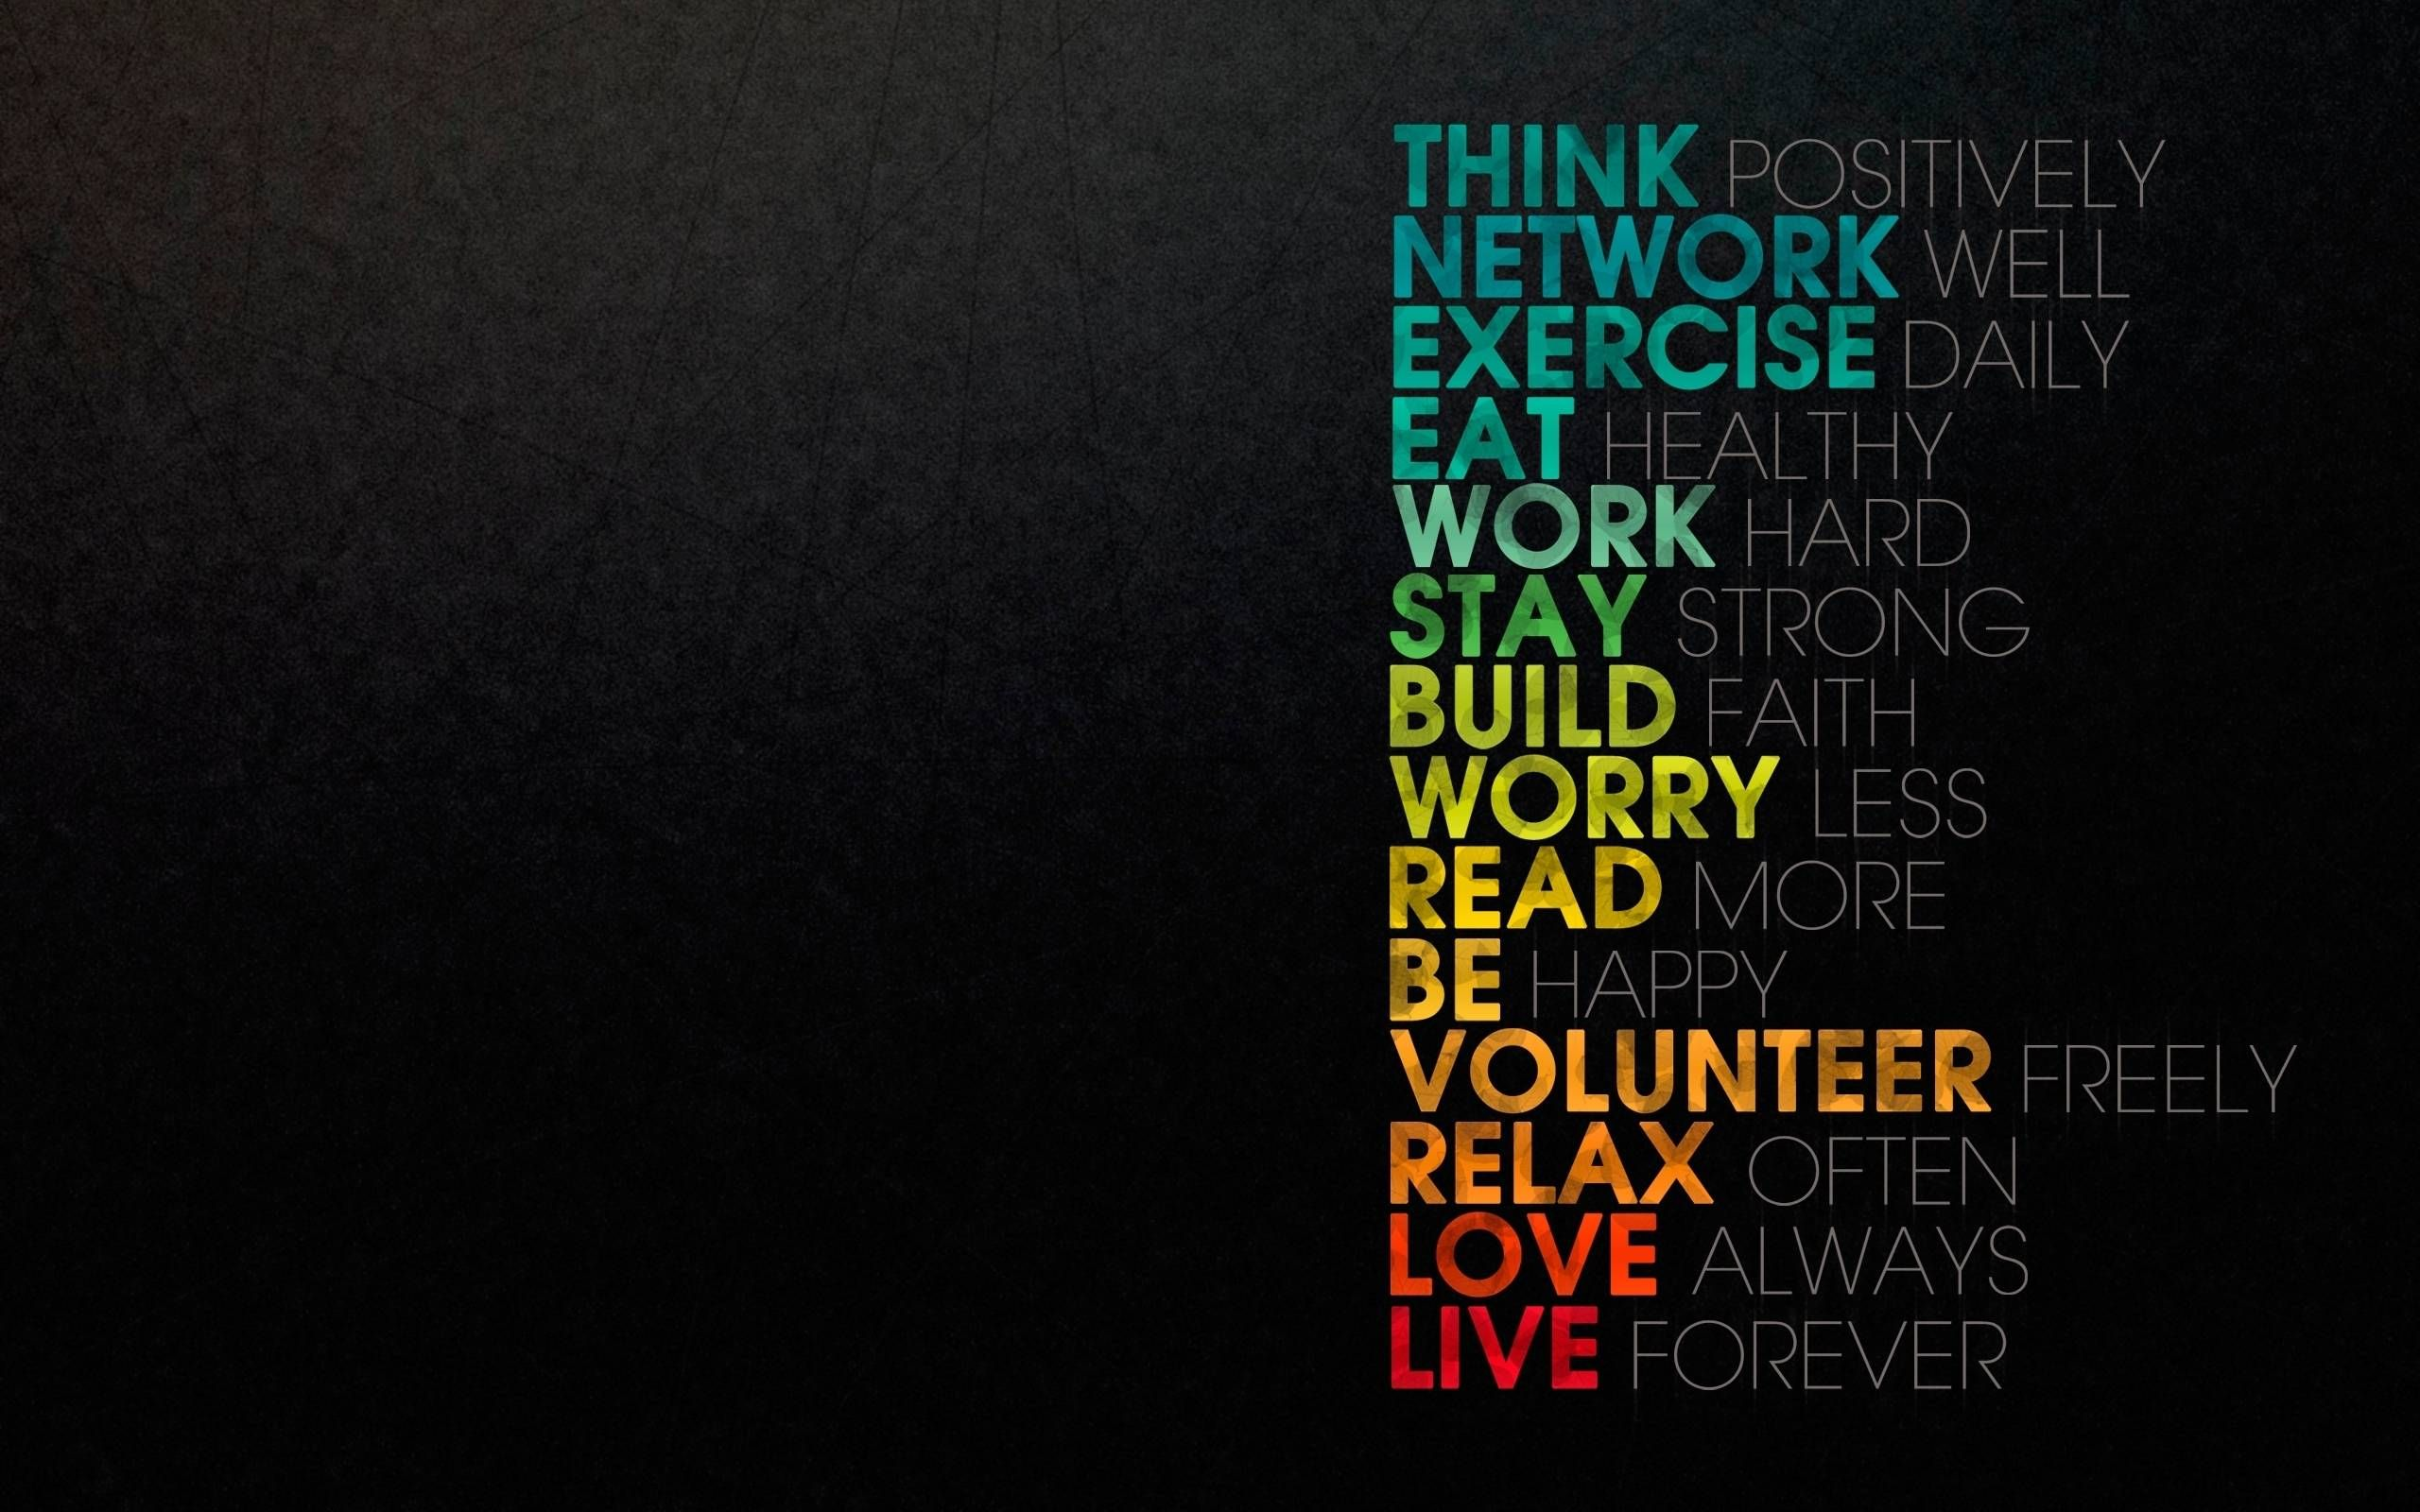 1920x1080 Wonderful 63 Hd Motivation Wallpaper For Pc Laptops Cute Wallpapers Quotes Motivational Wallpaper Inspirational Wallpapers